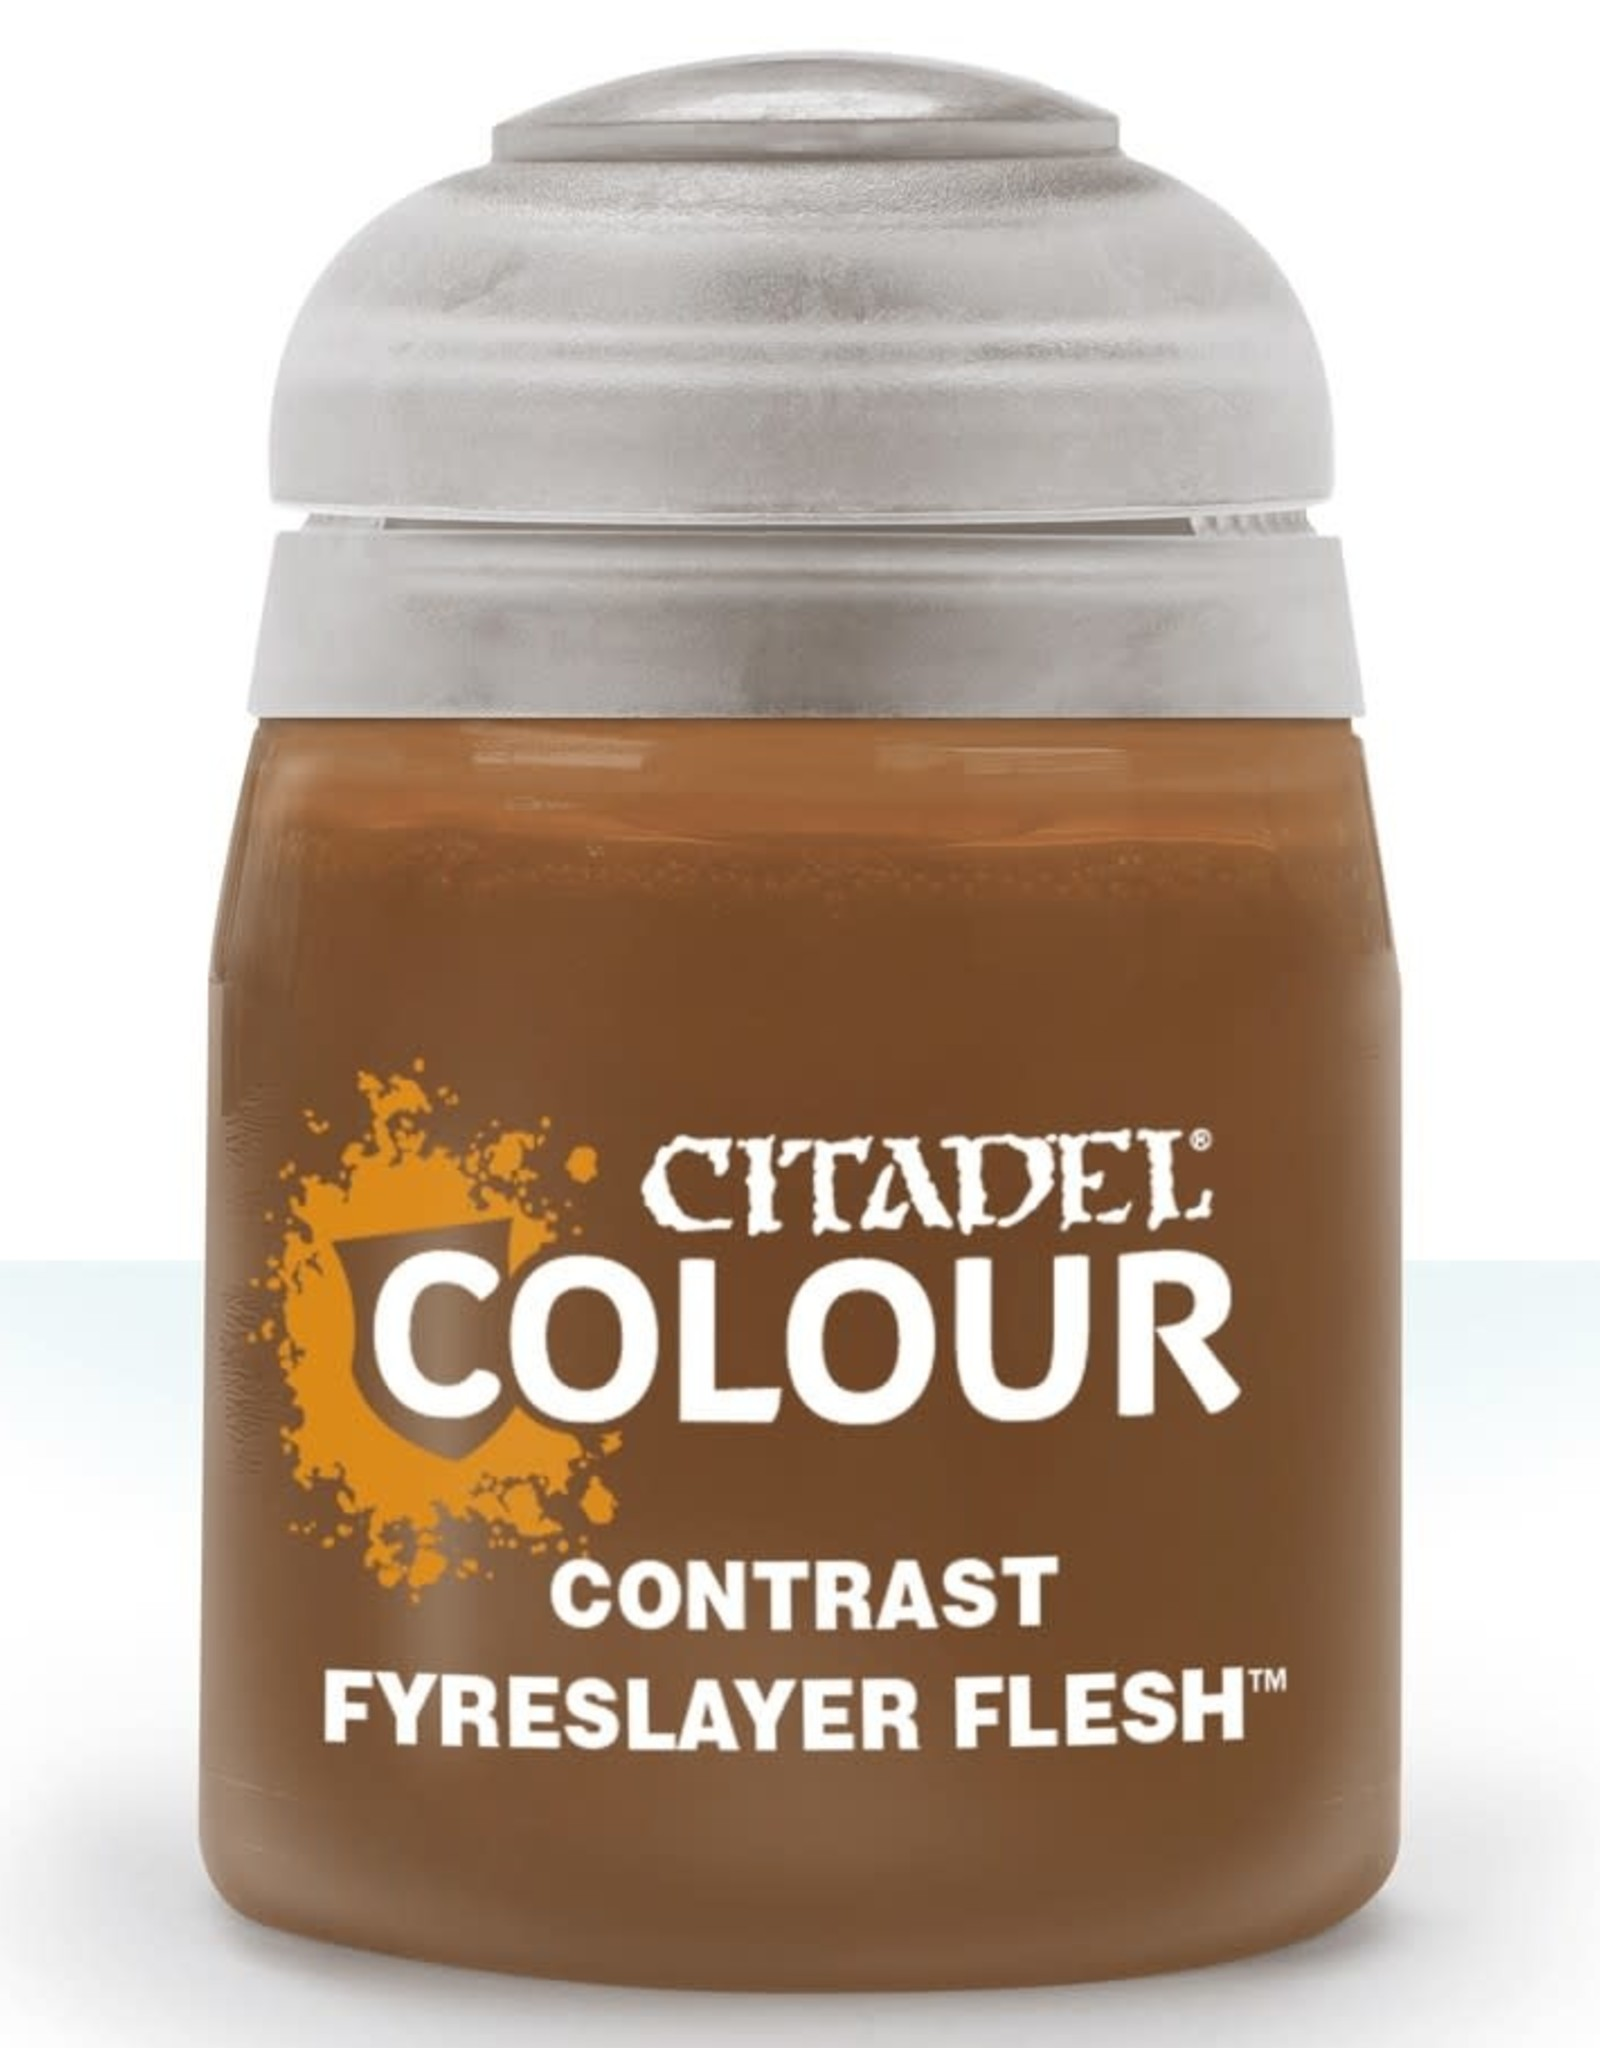 Citadel Contrast Paint: Fyreslayer Flesh